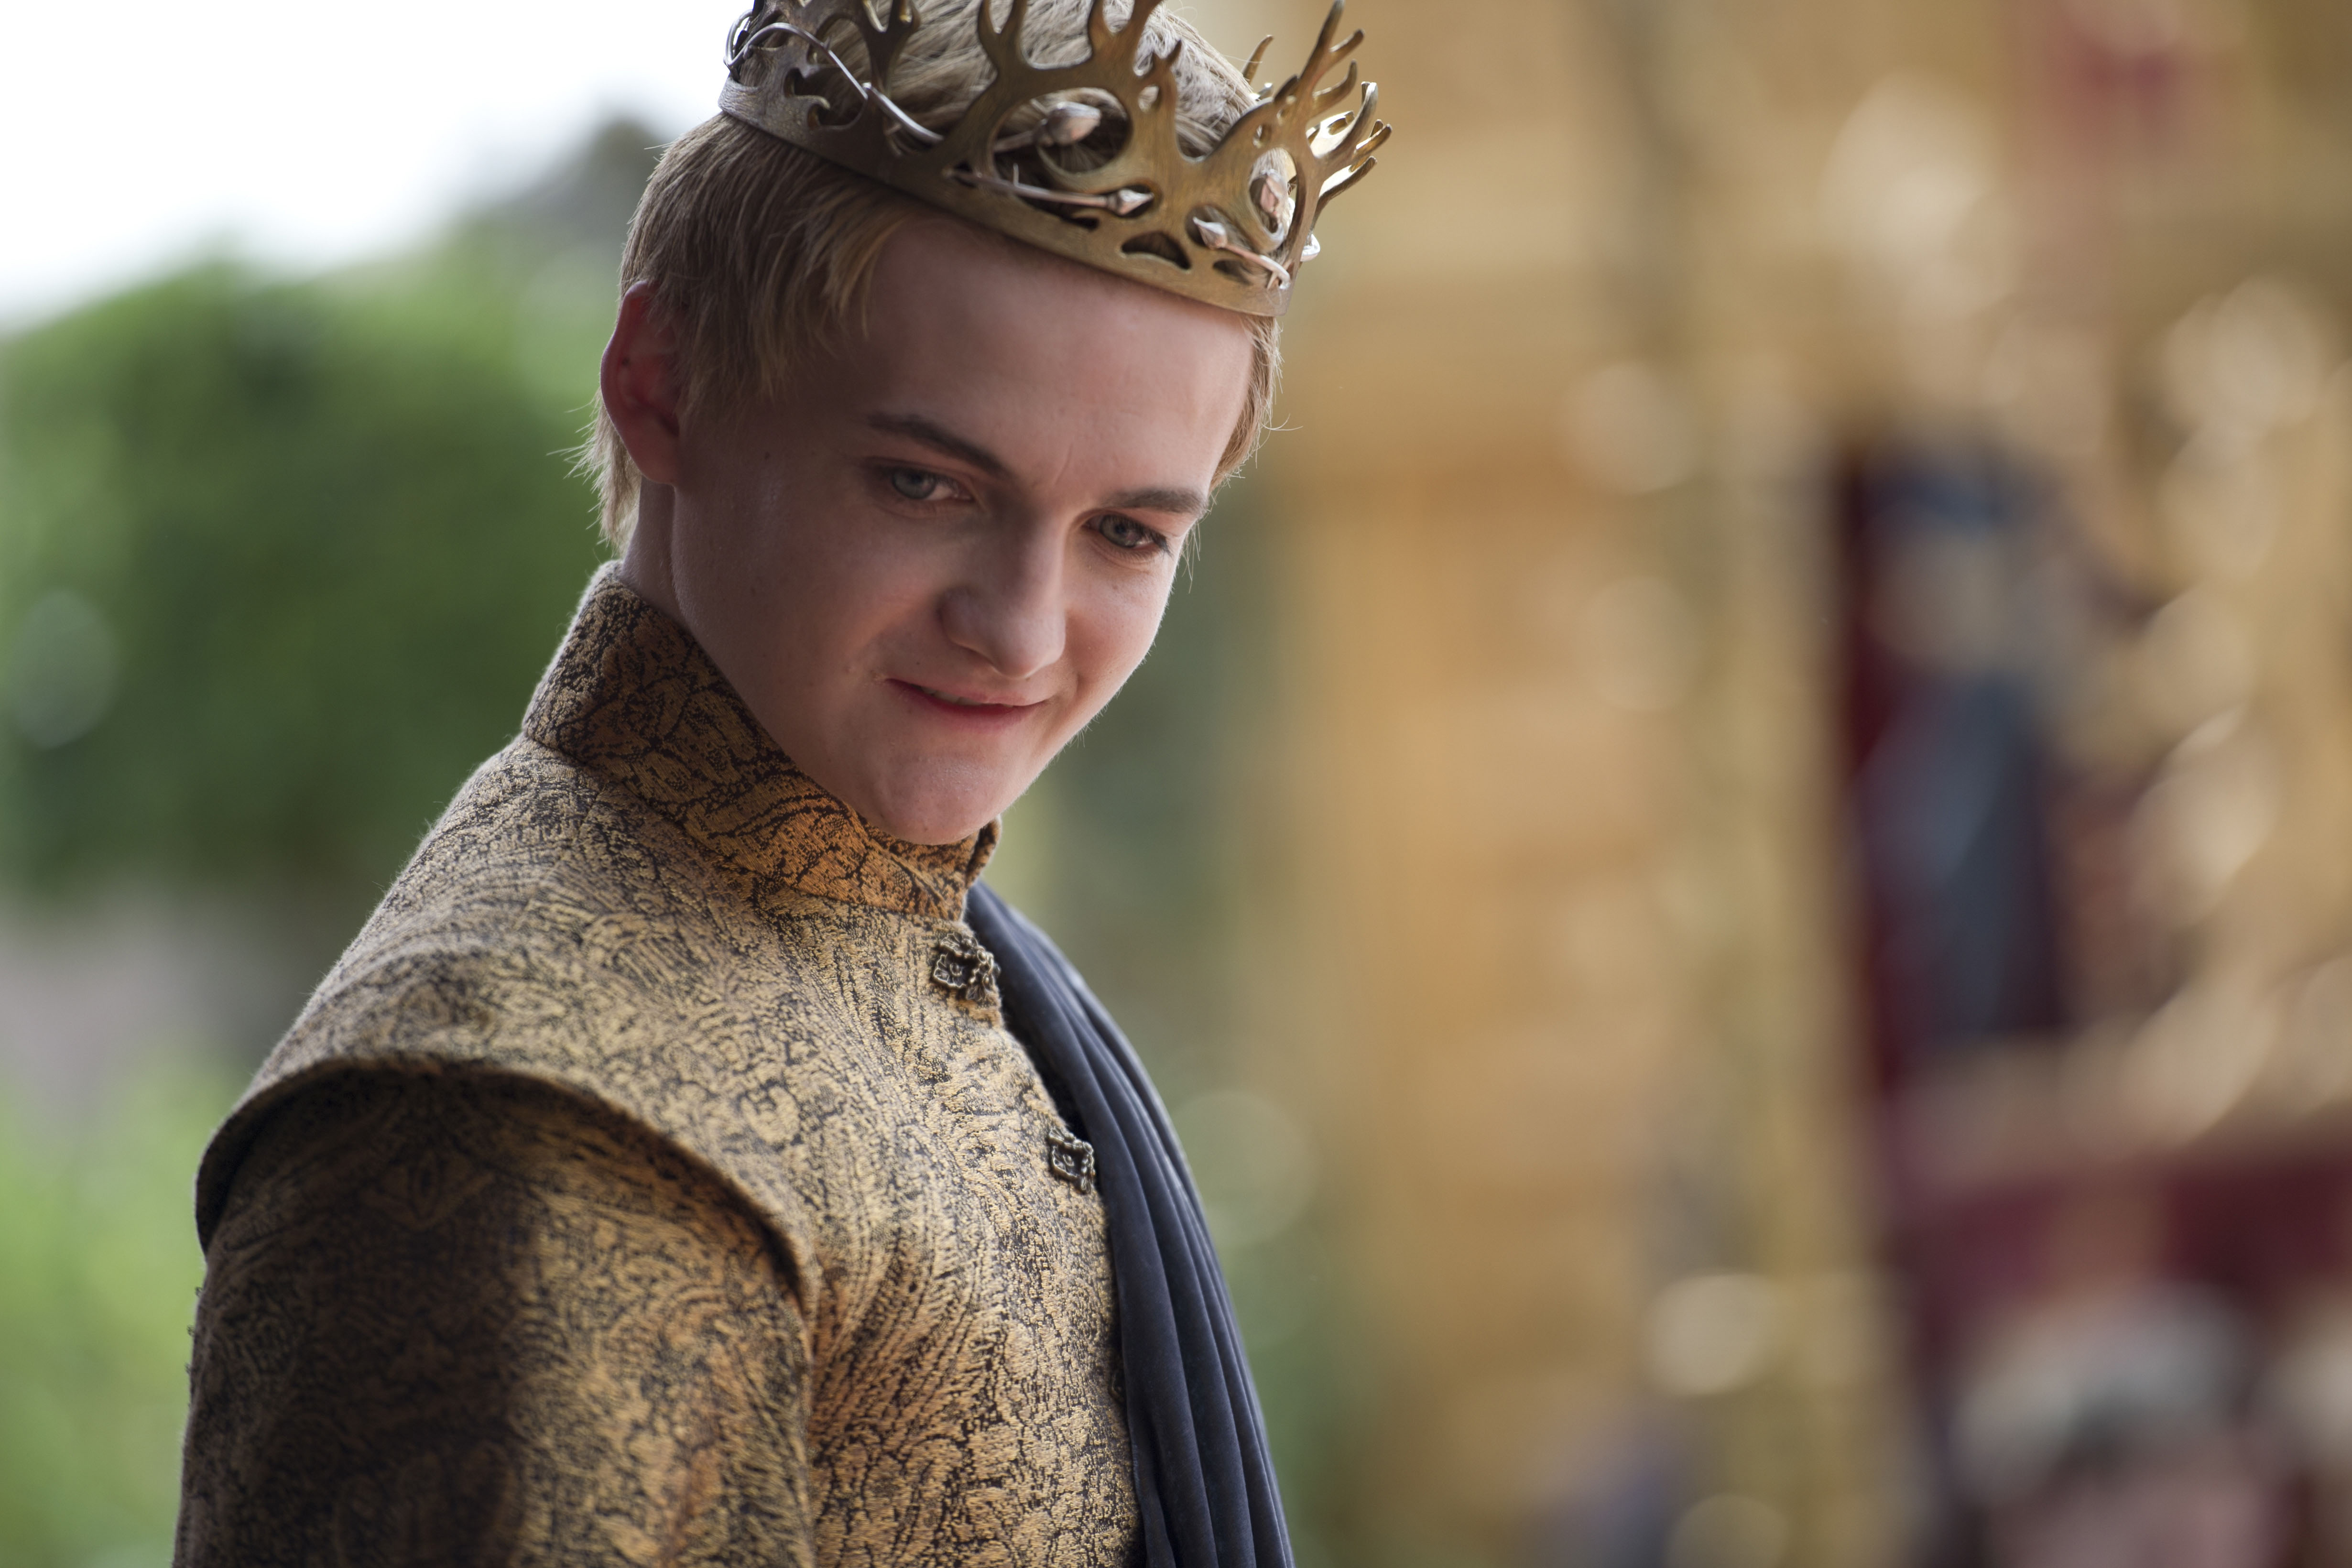 King Joffrey approves of this tactic.